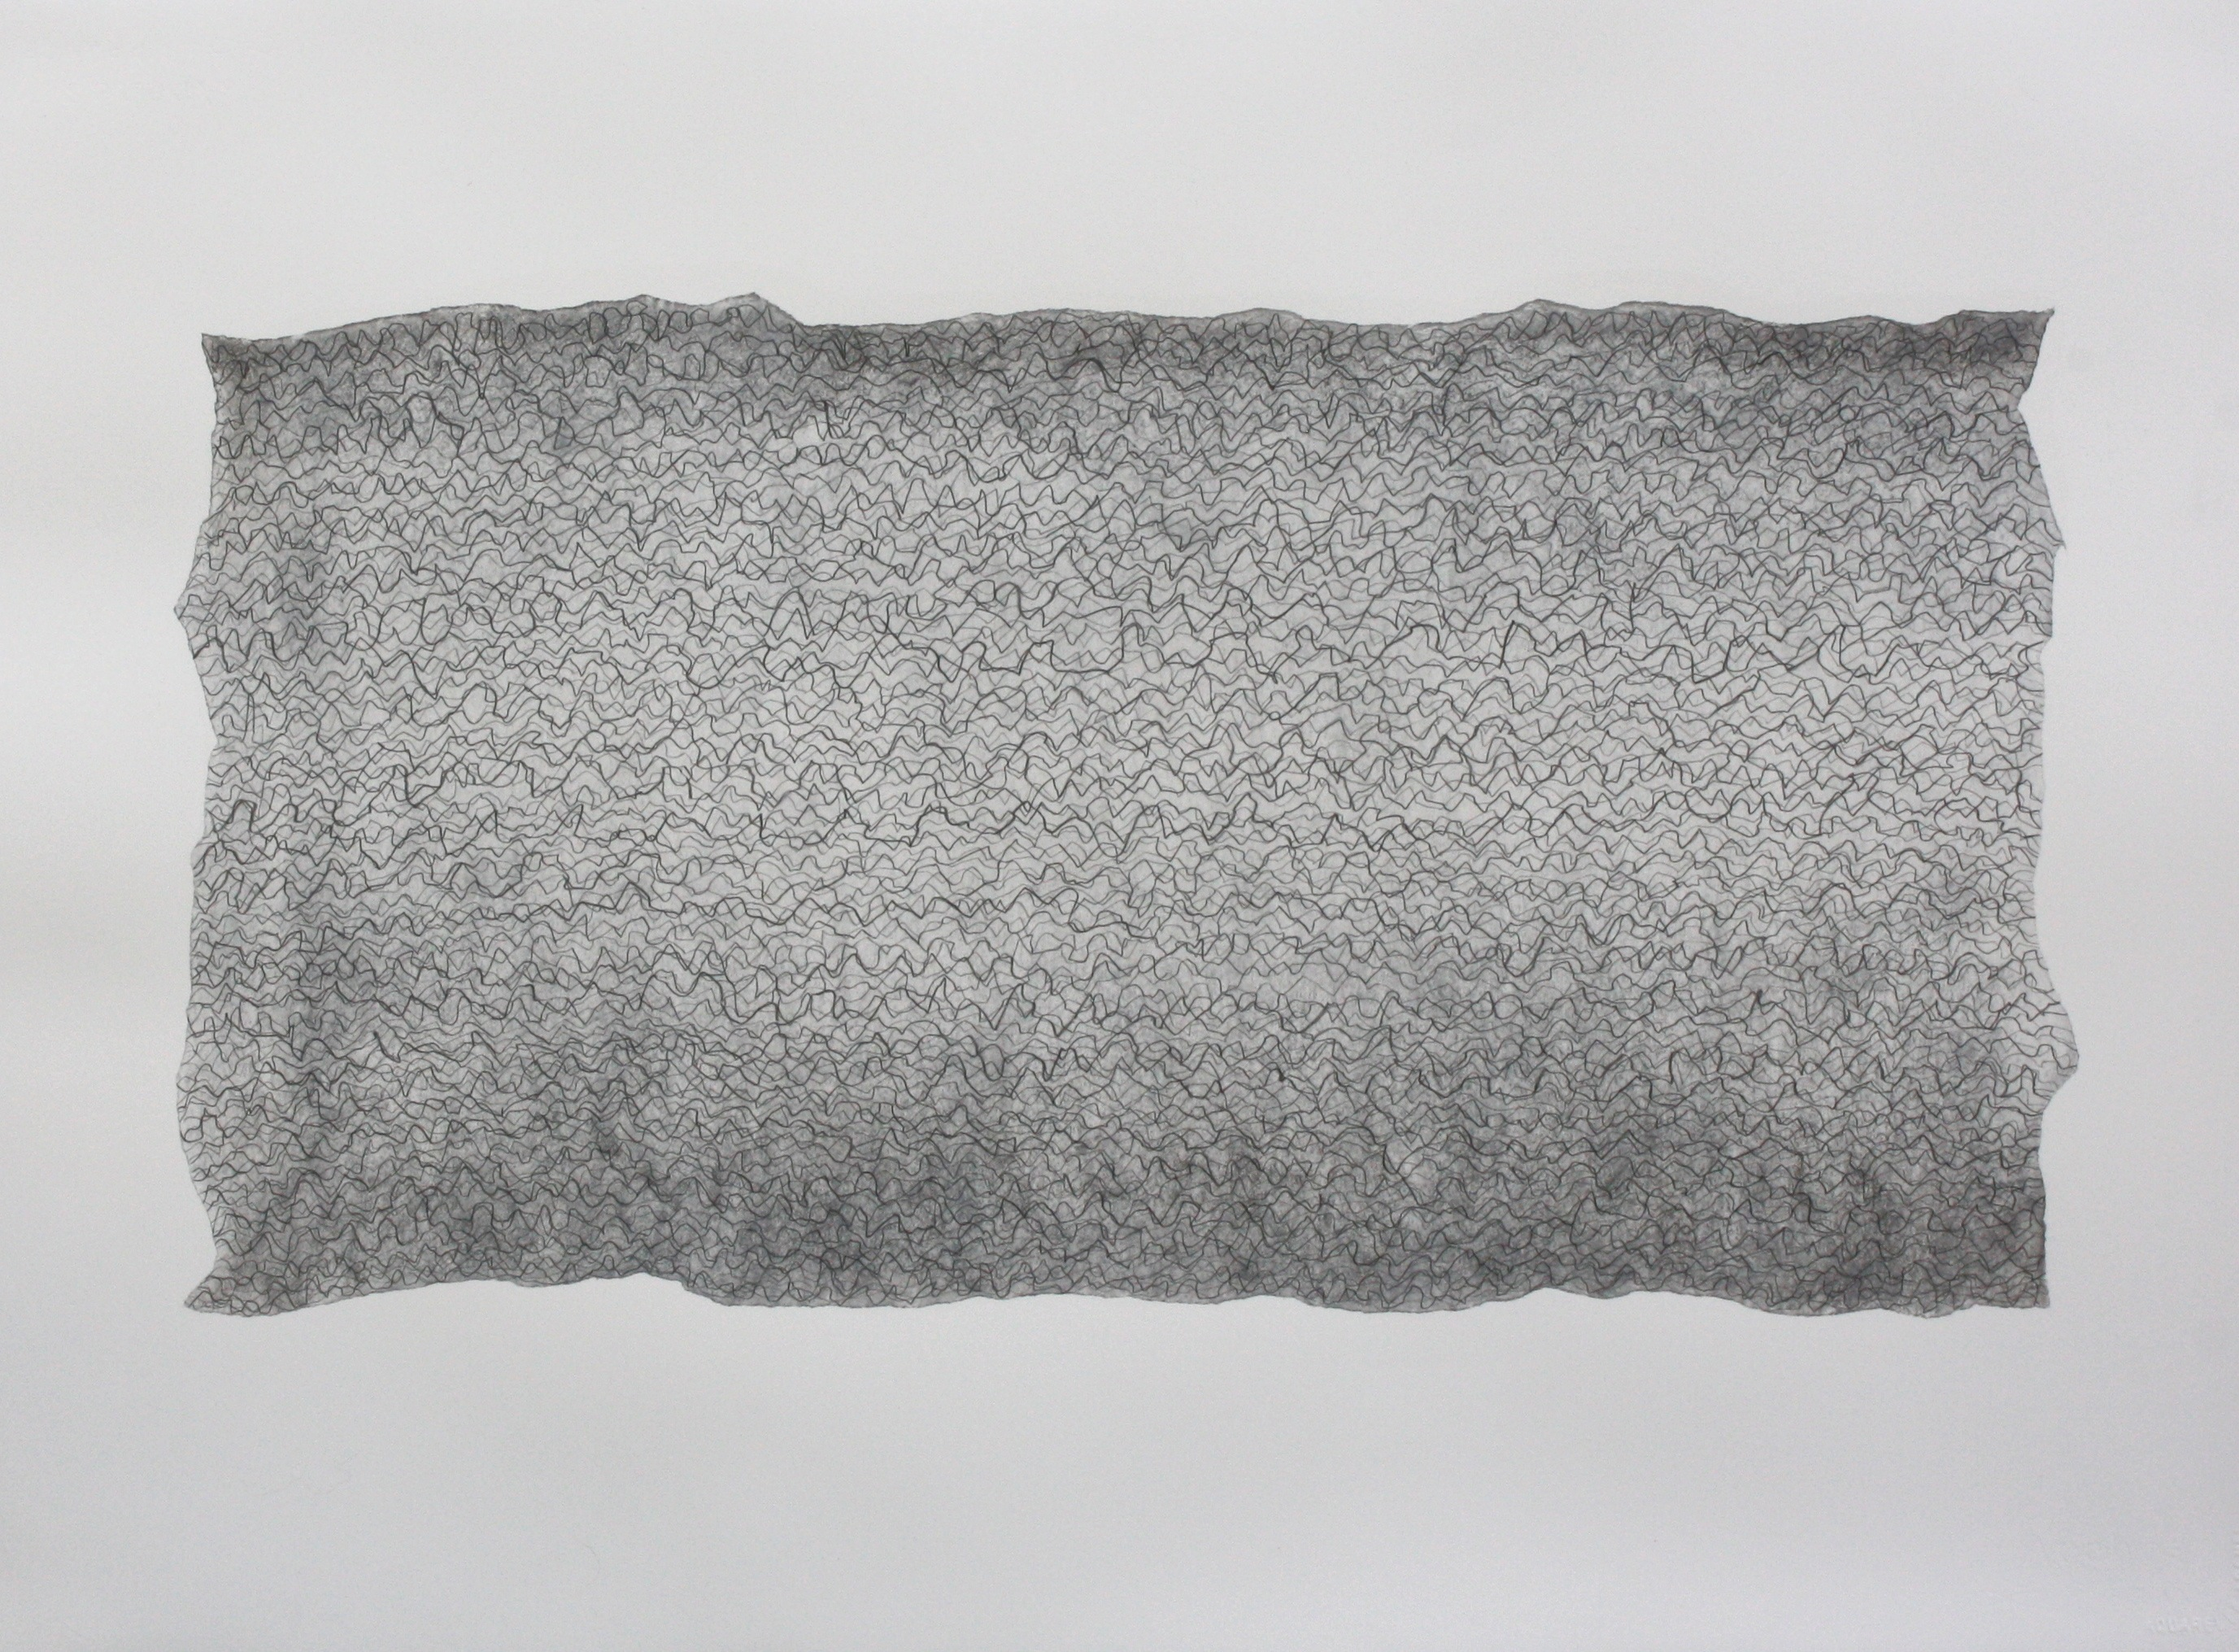 John Cage in a Landscape 1948, No 4, 2014, graphite, charcoal, chalk and wax, 56 × 76 cm